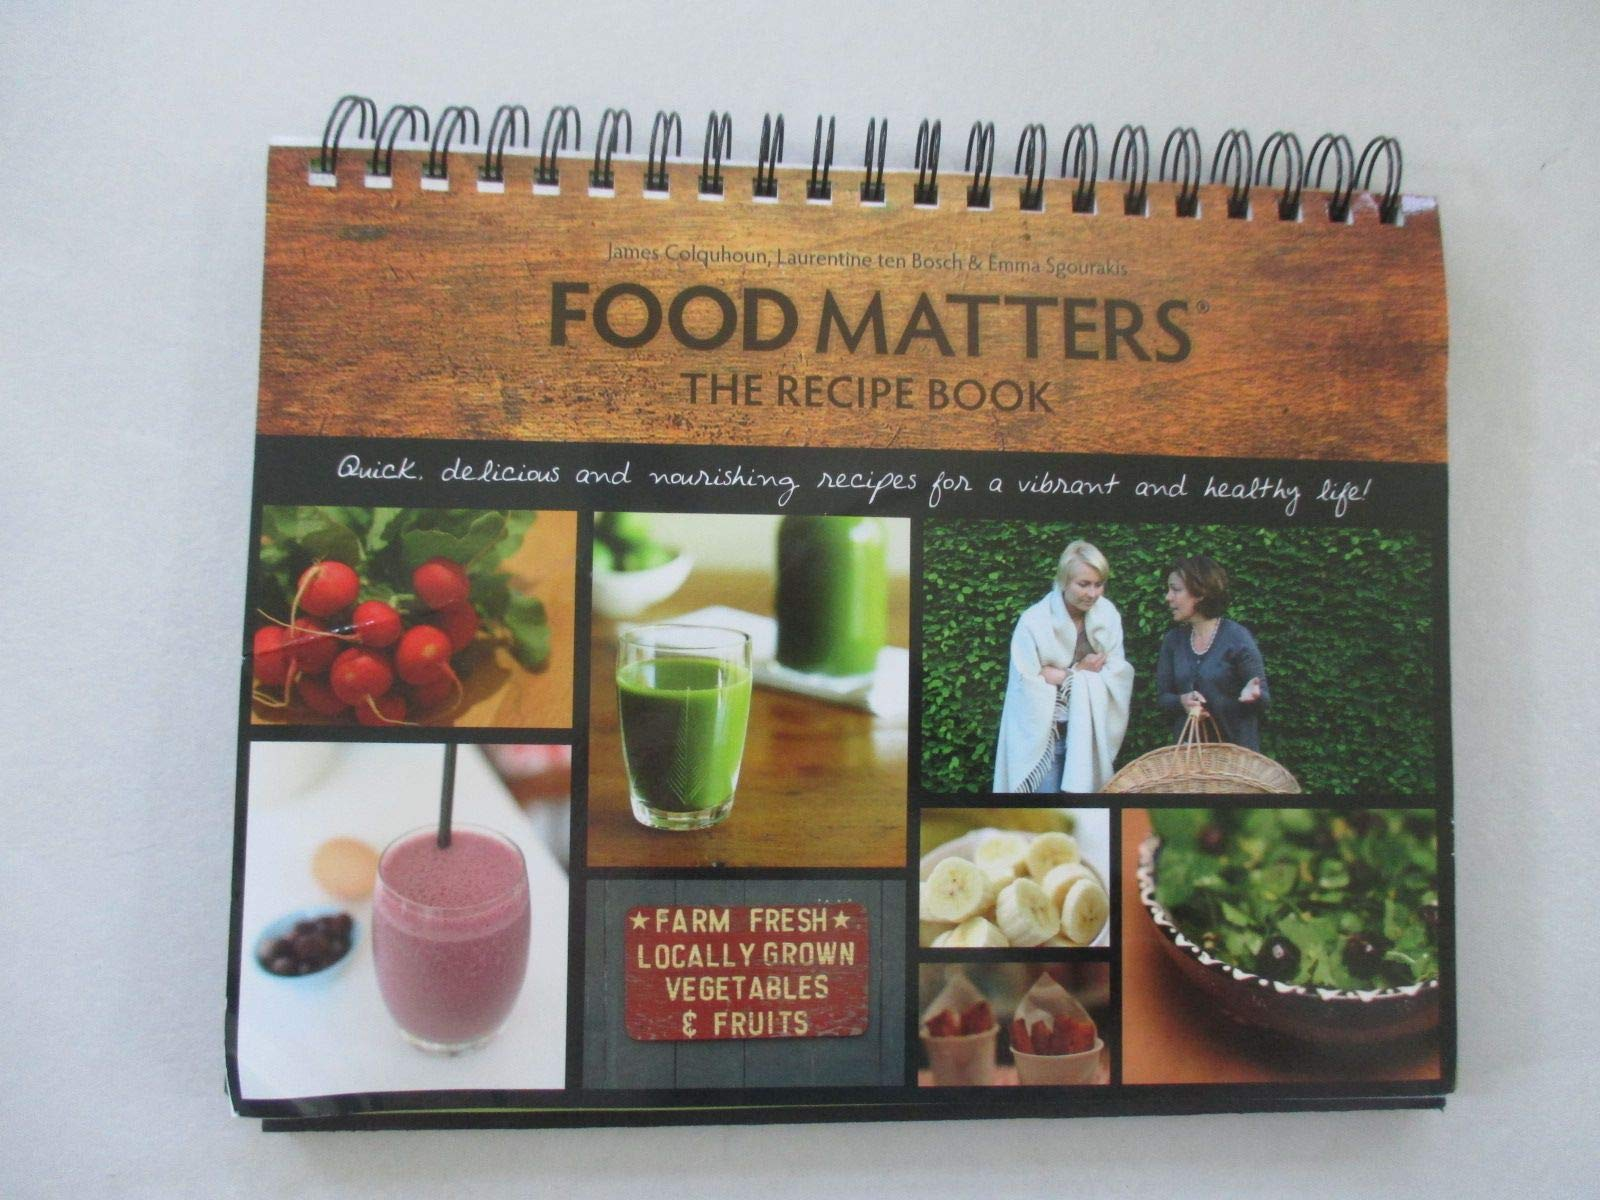 Food Matters the Recipe Book: Quick, Delicious, and Nourishing Recipes for a Vibrant and Healthy Life by Permacology Productions